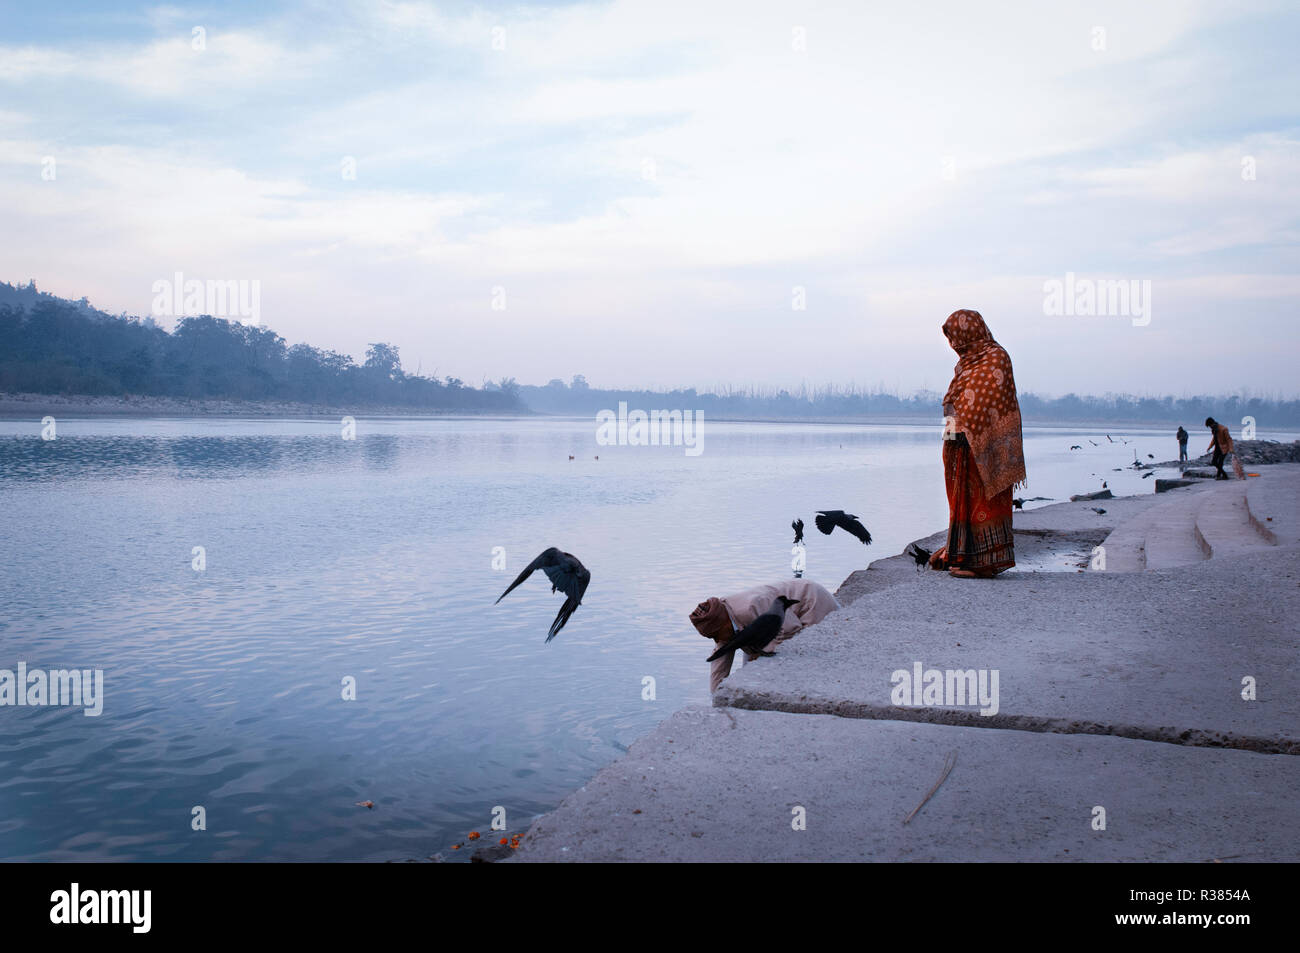 Pelgrims at early morning hour alongside the holy Ganges river. Rishikesh, India - Stock Image